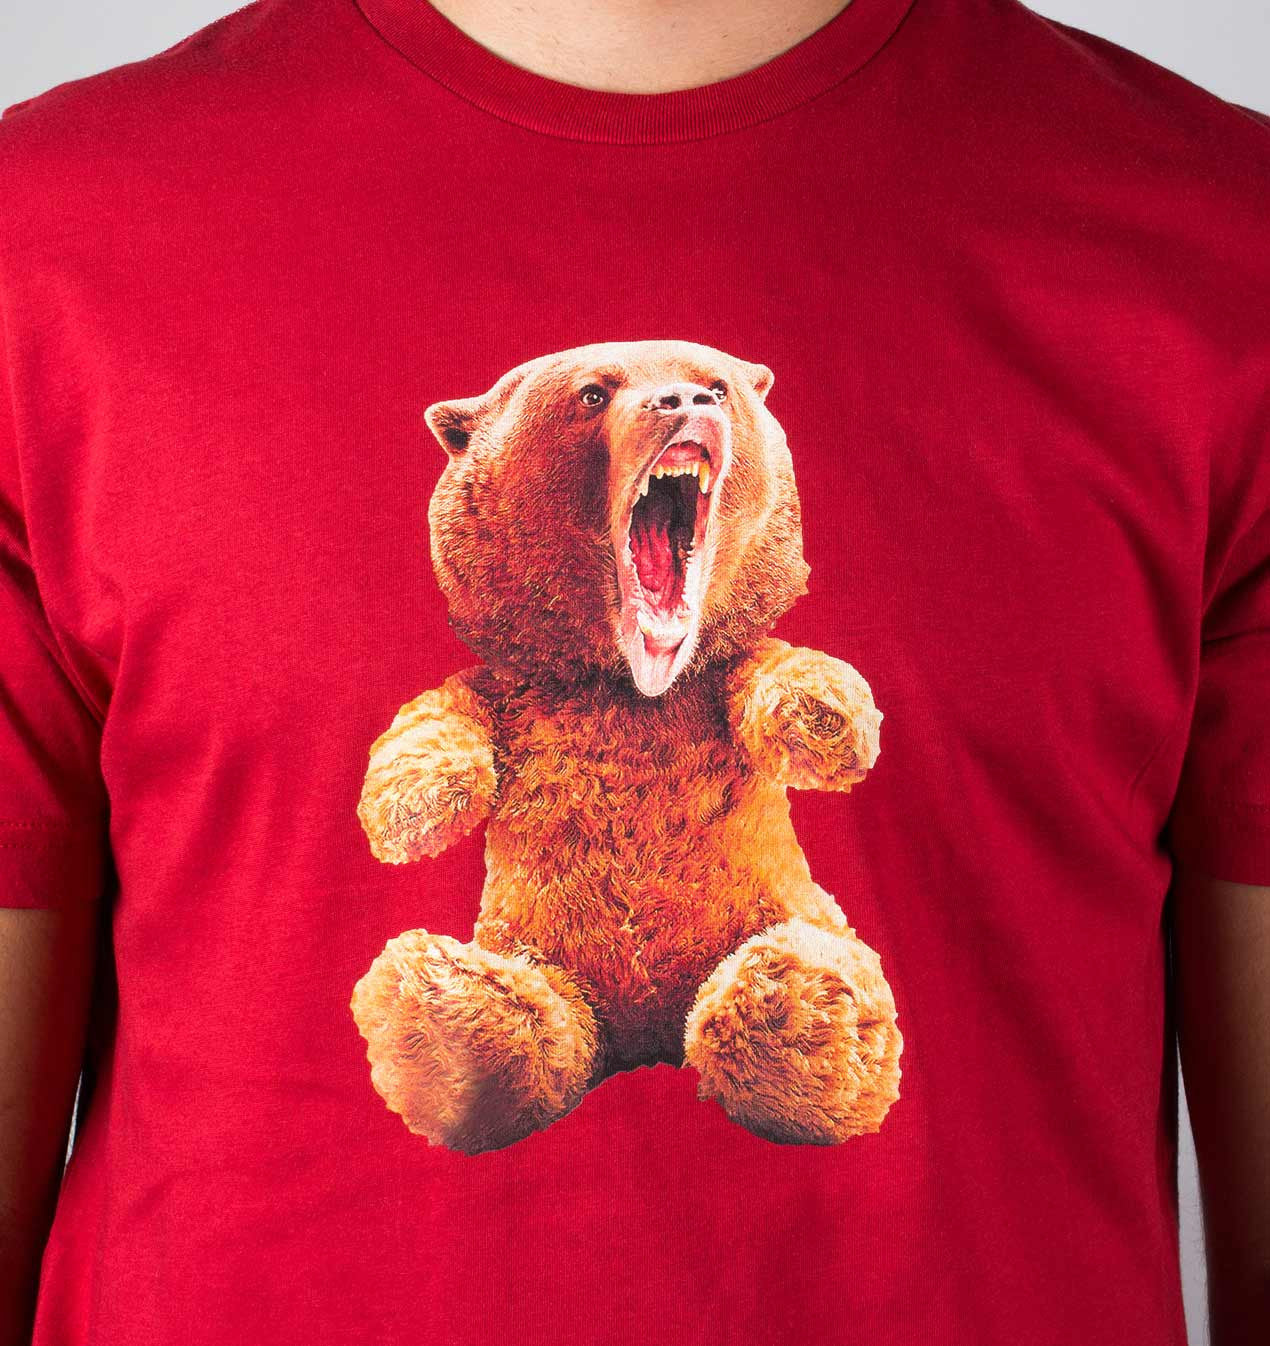 Teddy Bear or Grizzly Bear? unisex t-shirt